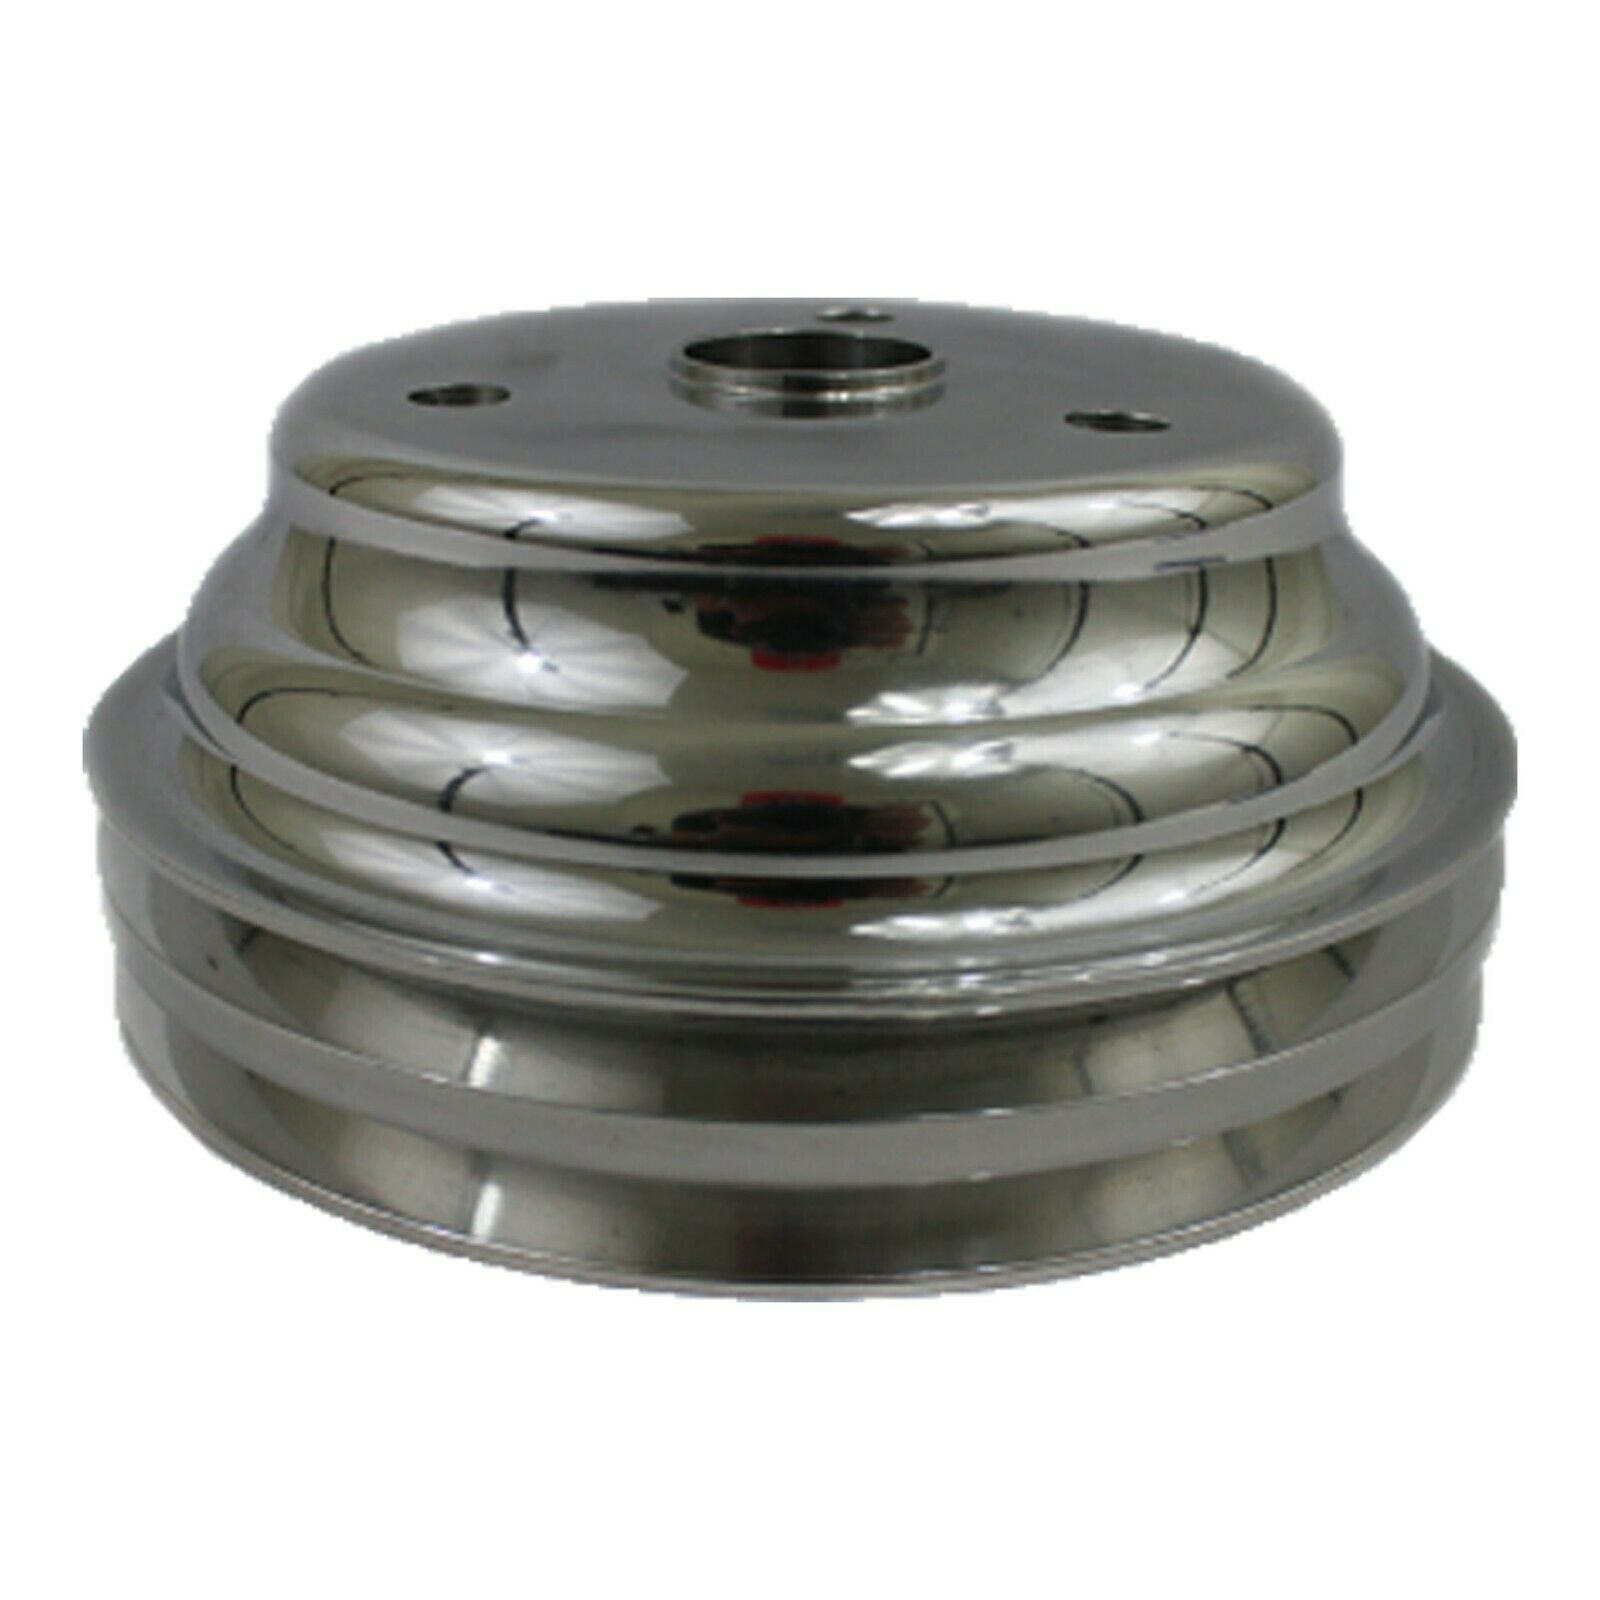 Chevy Small Block Long Water Pump Double Groove Aluminum Crankshaft Pulley